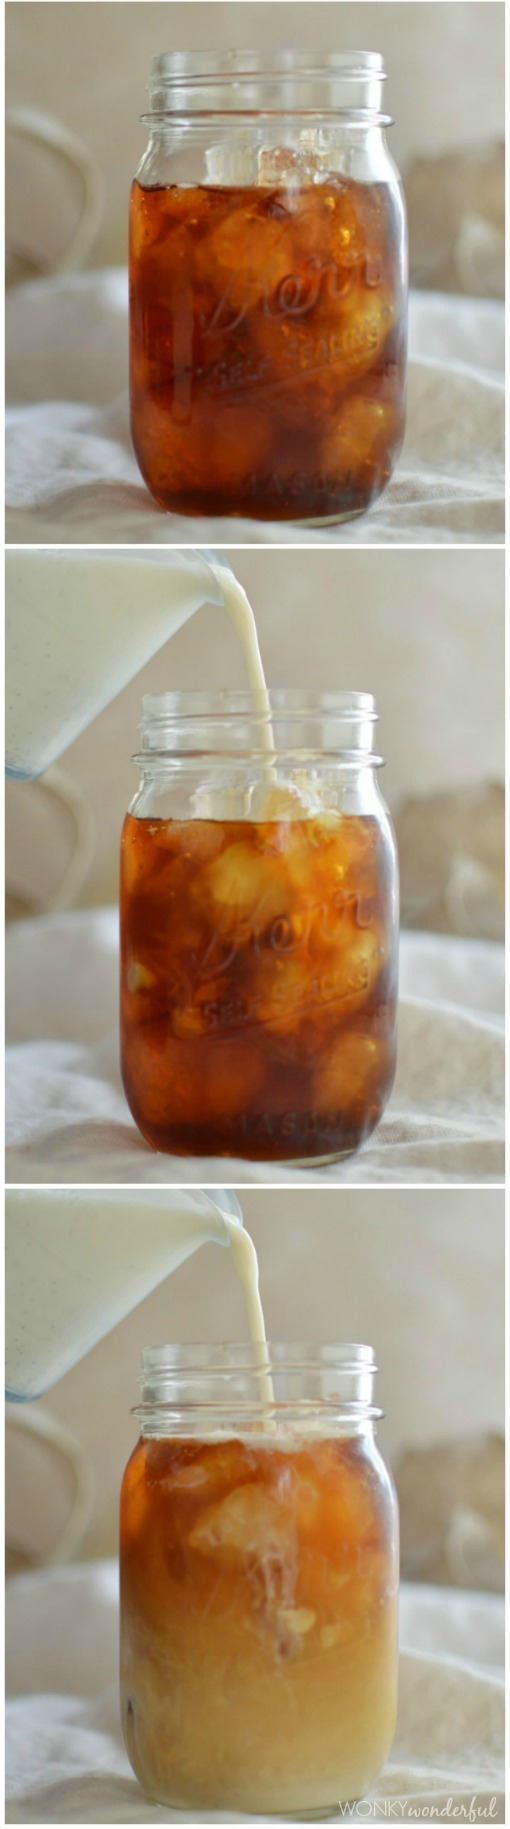 Cold Brewed Iced Coffee with Vanilla Cardamom Homemade Coffee Creamer - wonkywonderful.com